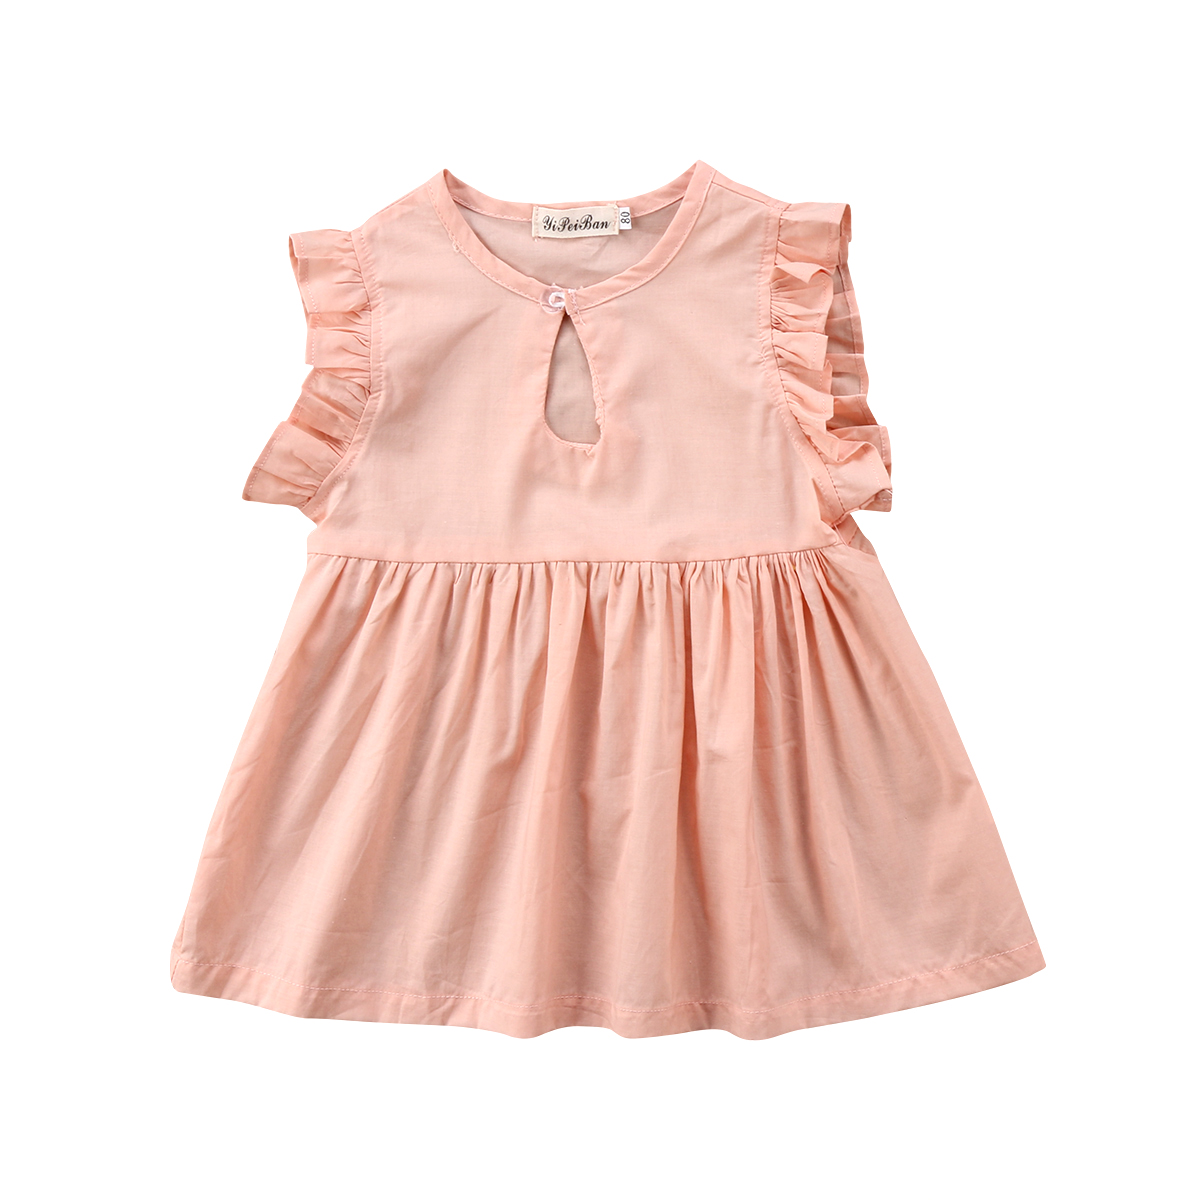 2018 Toddler Kid Baby Girl Pink Soft Sundress Flying Sleeves Outfits Jumpsuit Sweet Dresses Summer Clothing